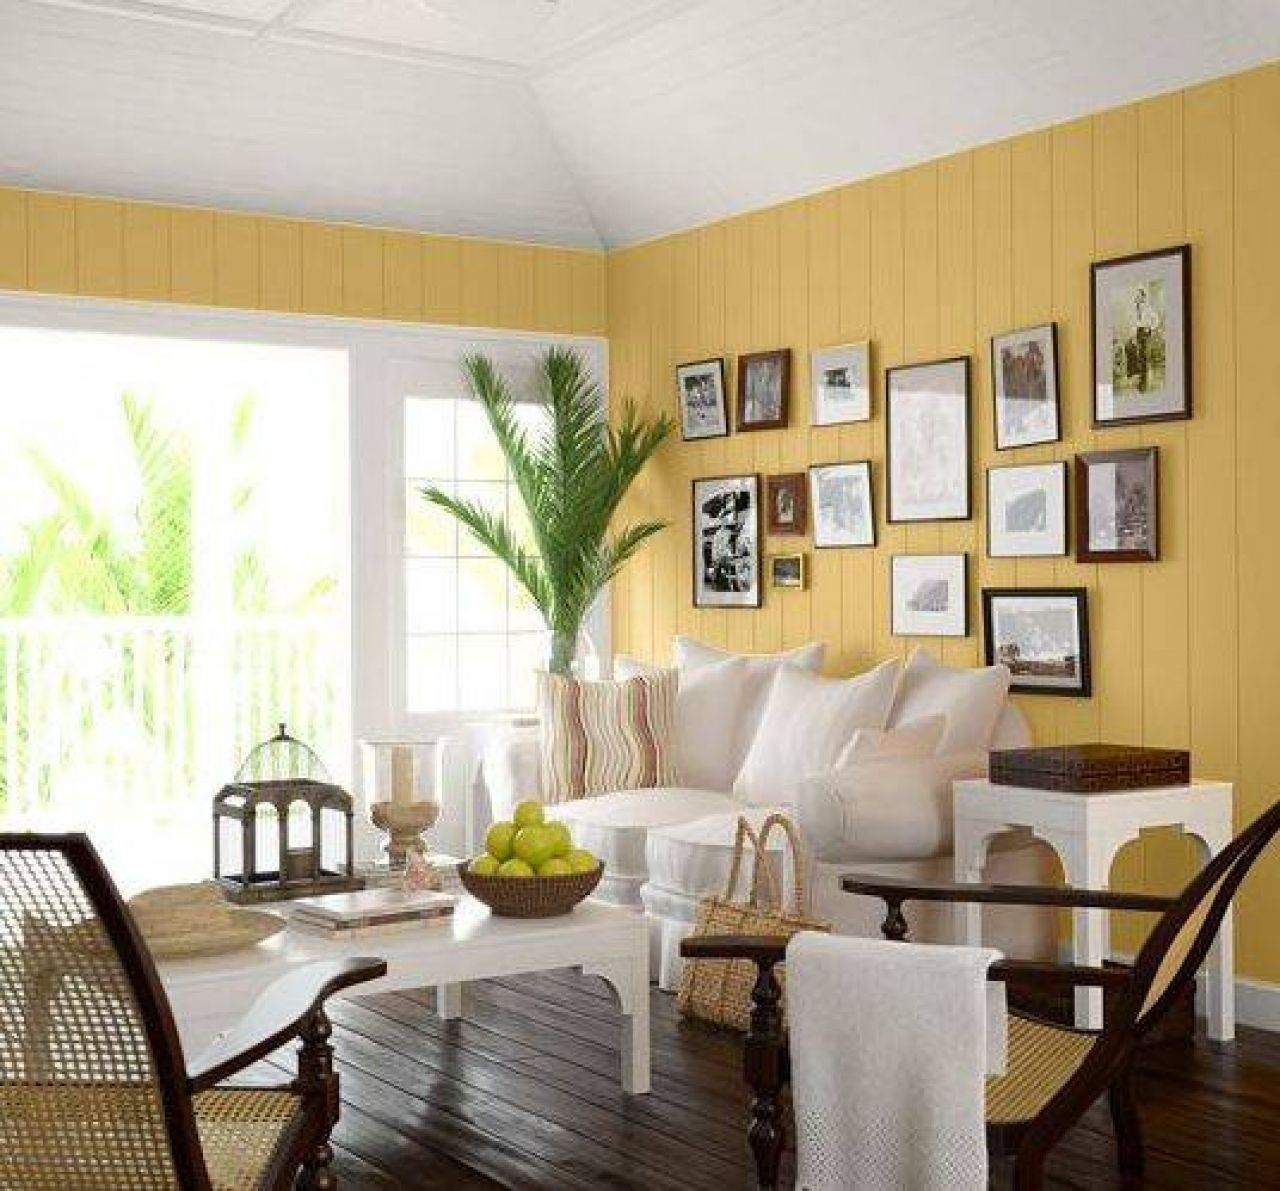 Home decoration paint color ideas for living room  pastel yellow also rooms colors design rh pinterest